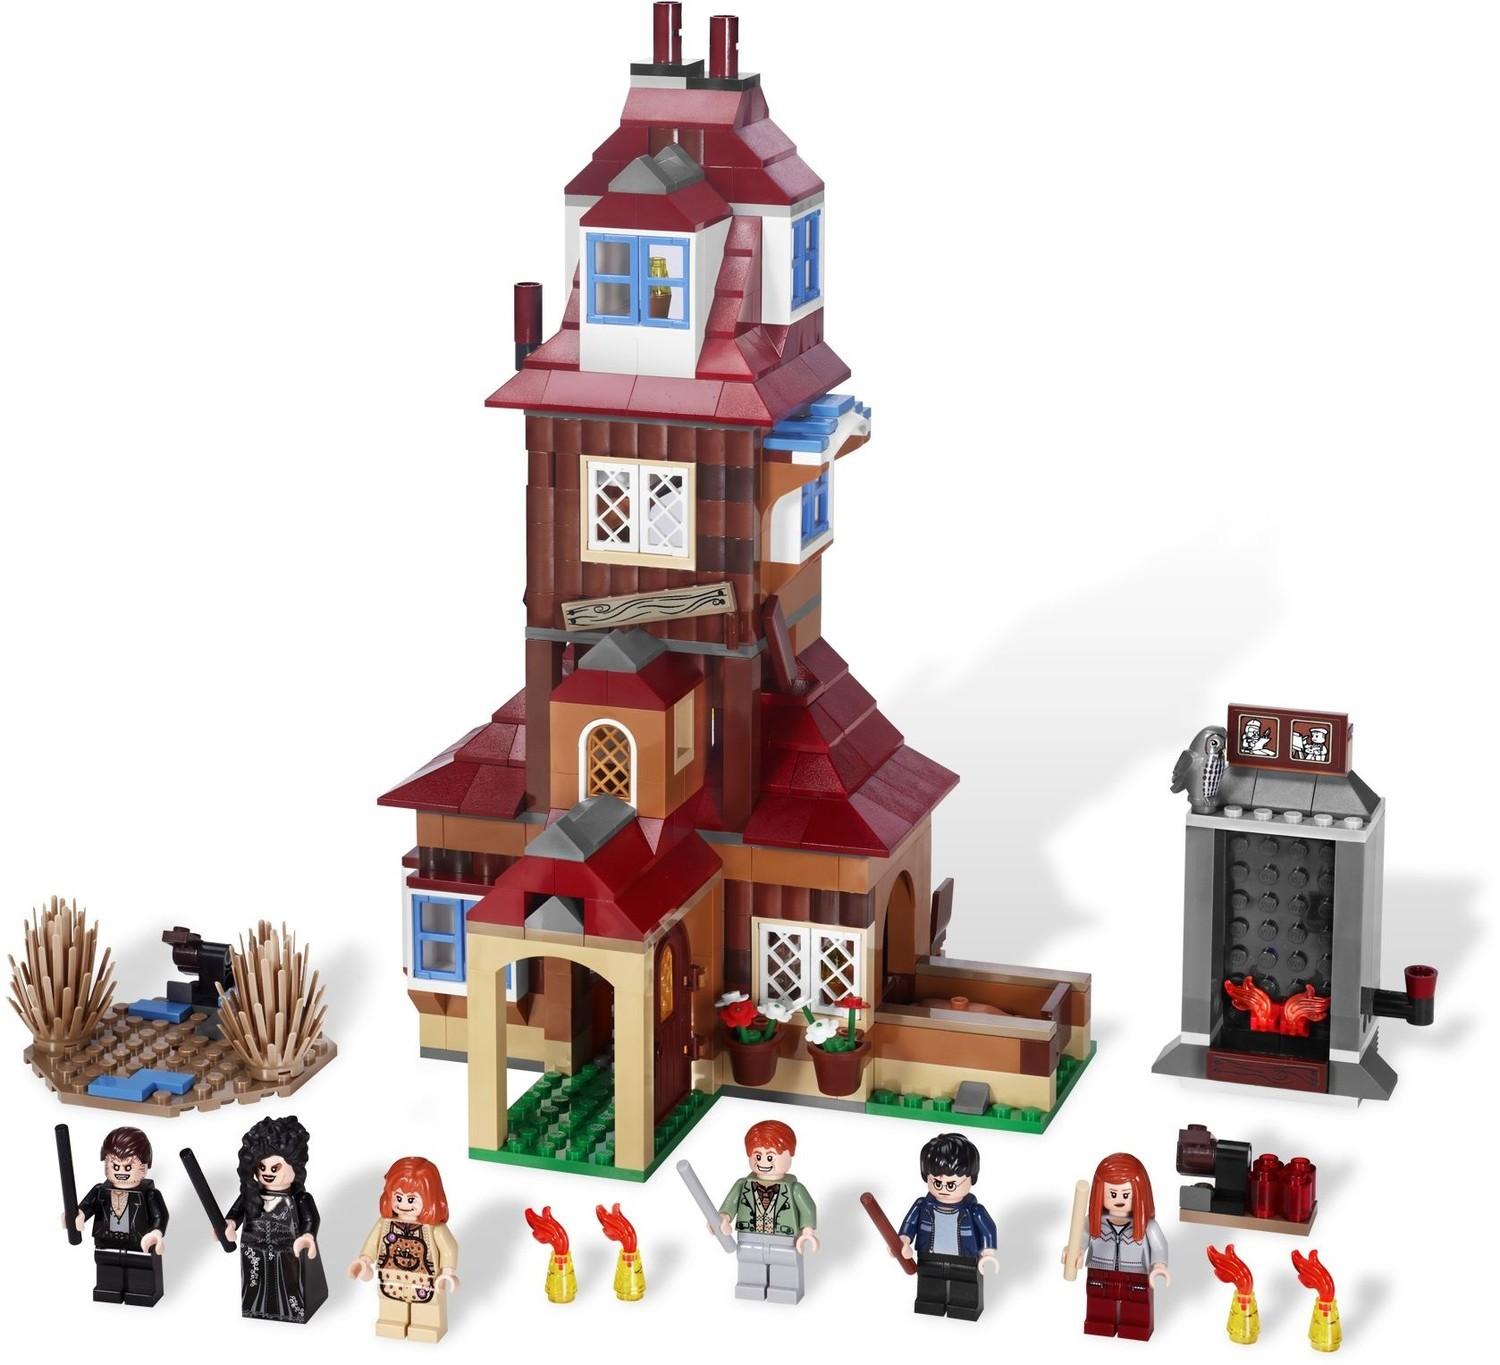 The Burrow Lego Harry Potter Set 4840 The set is modeled on the ship that was sailed by durmstrang students to hogwarts so that they may participate in the prestigious triwizard tournament. the burrow lego harry potter set 4840